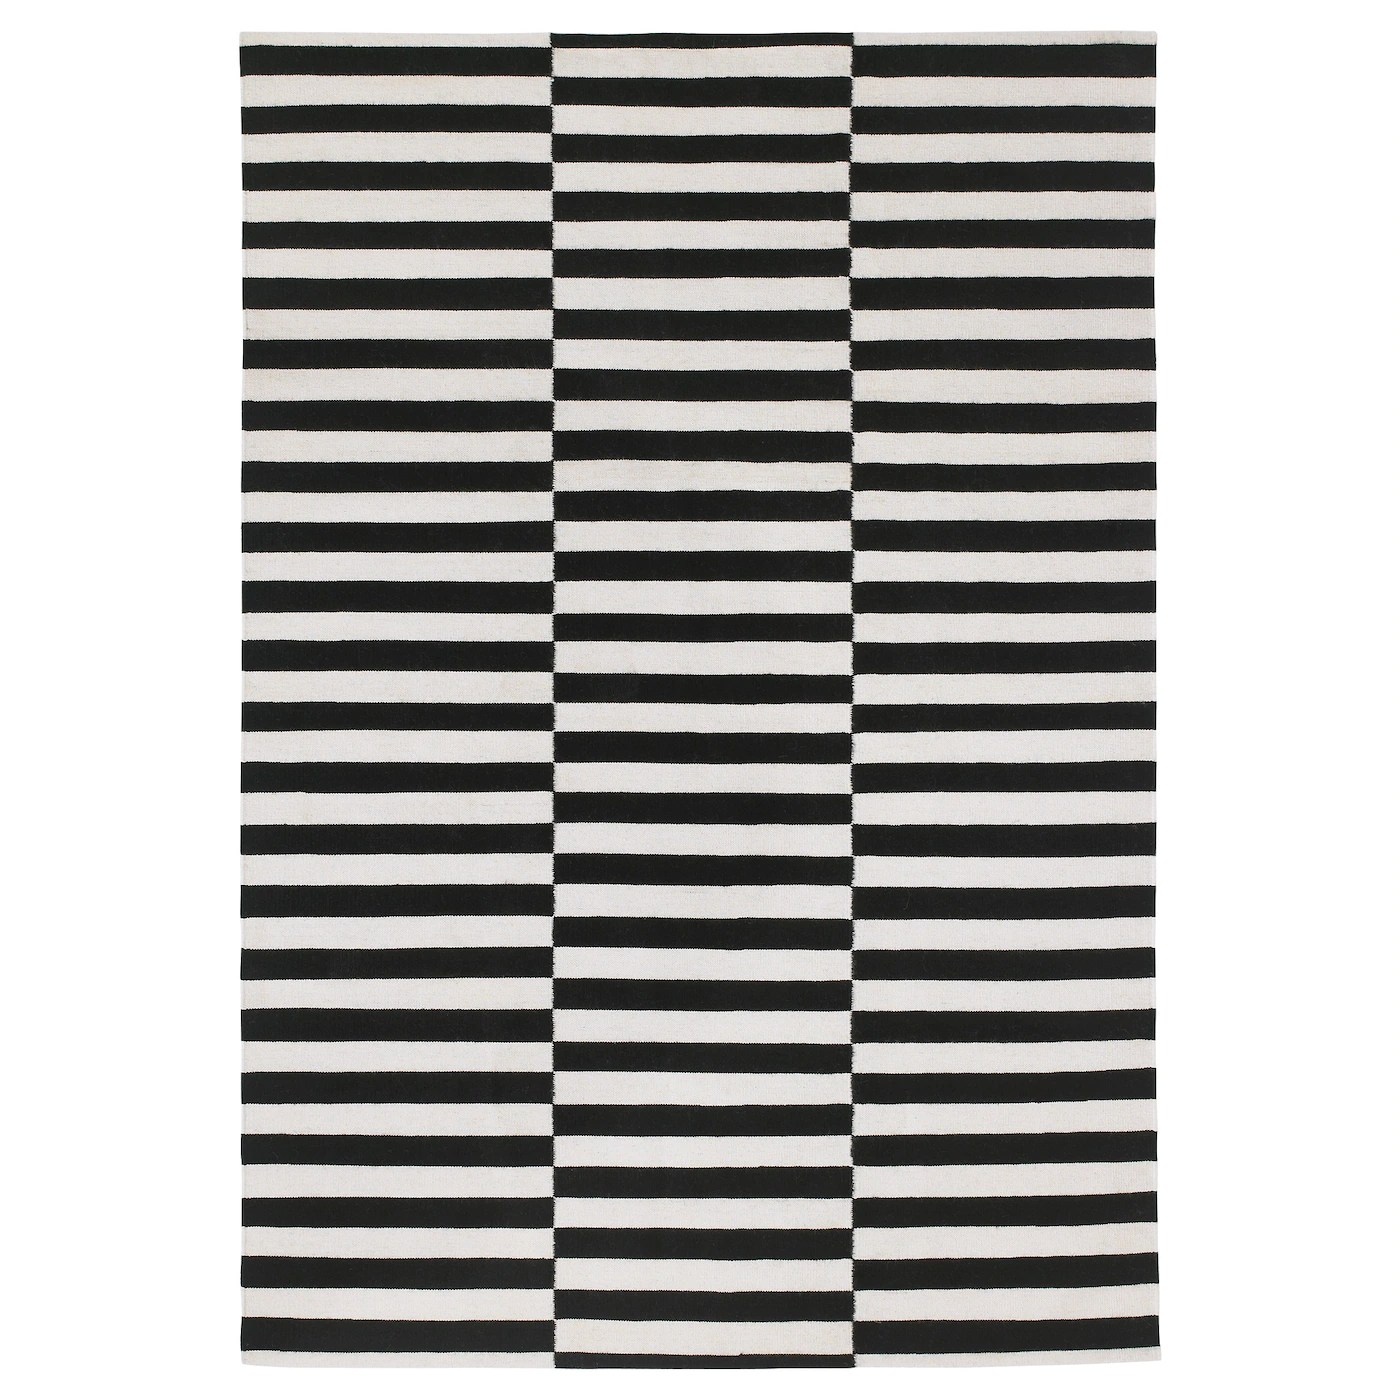 Rug Flatwoven Stockholm Black Handmade Striped Off White Striped Black Off White